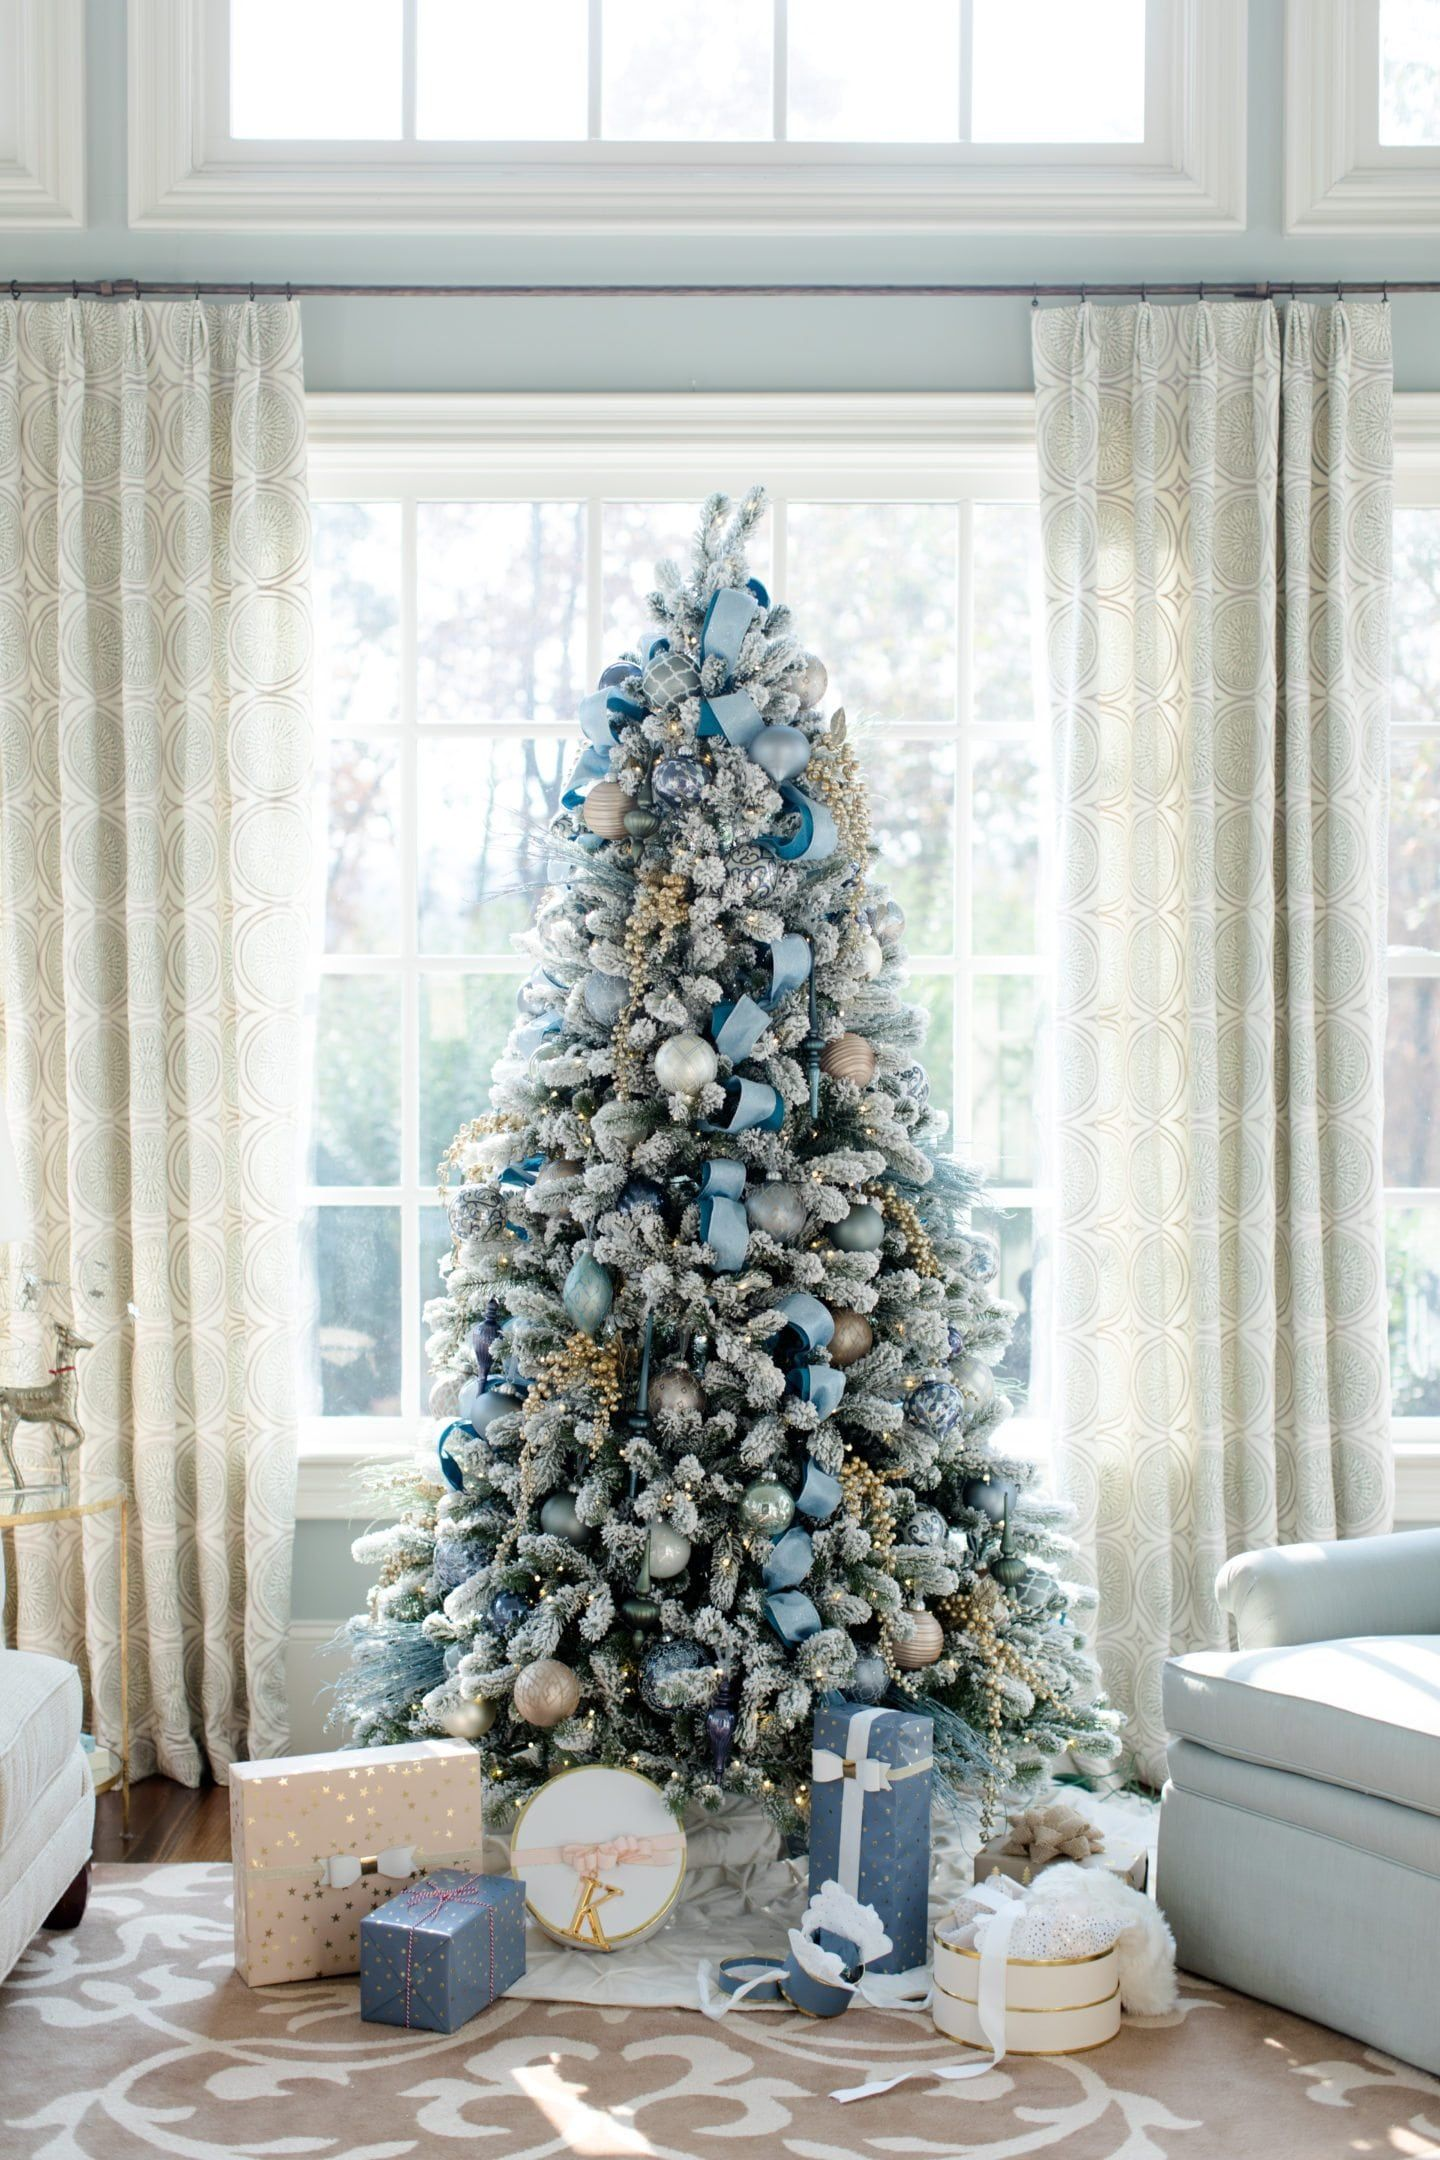 Flocked Christmas Tree With Blue Glornaments And Blue Ribbon And Presents Below It